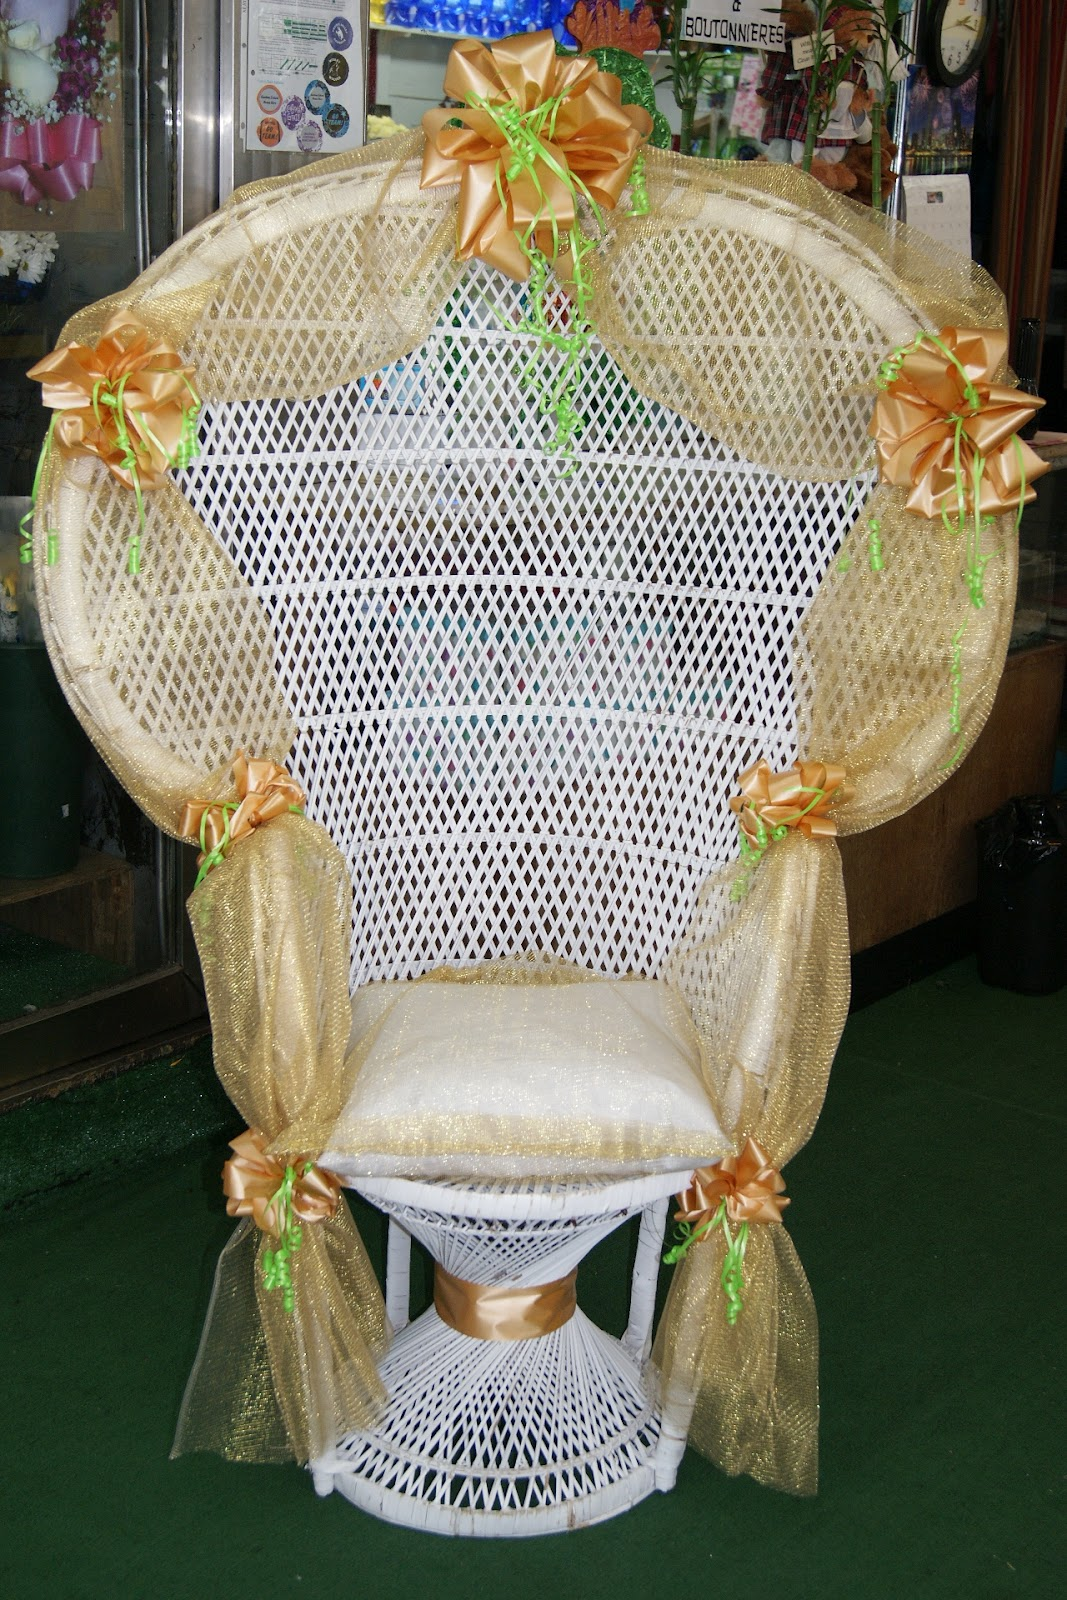 Baby+Shower+Chair+Rental+Philadelphia http://www.pic2fly.com/Baby